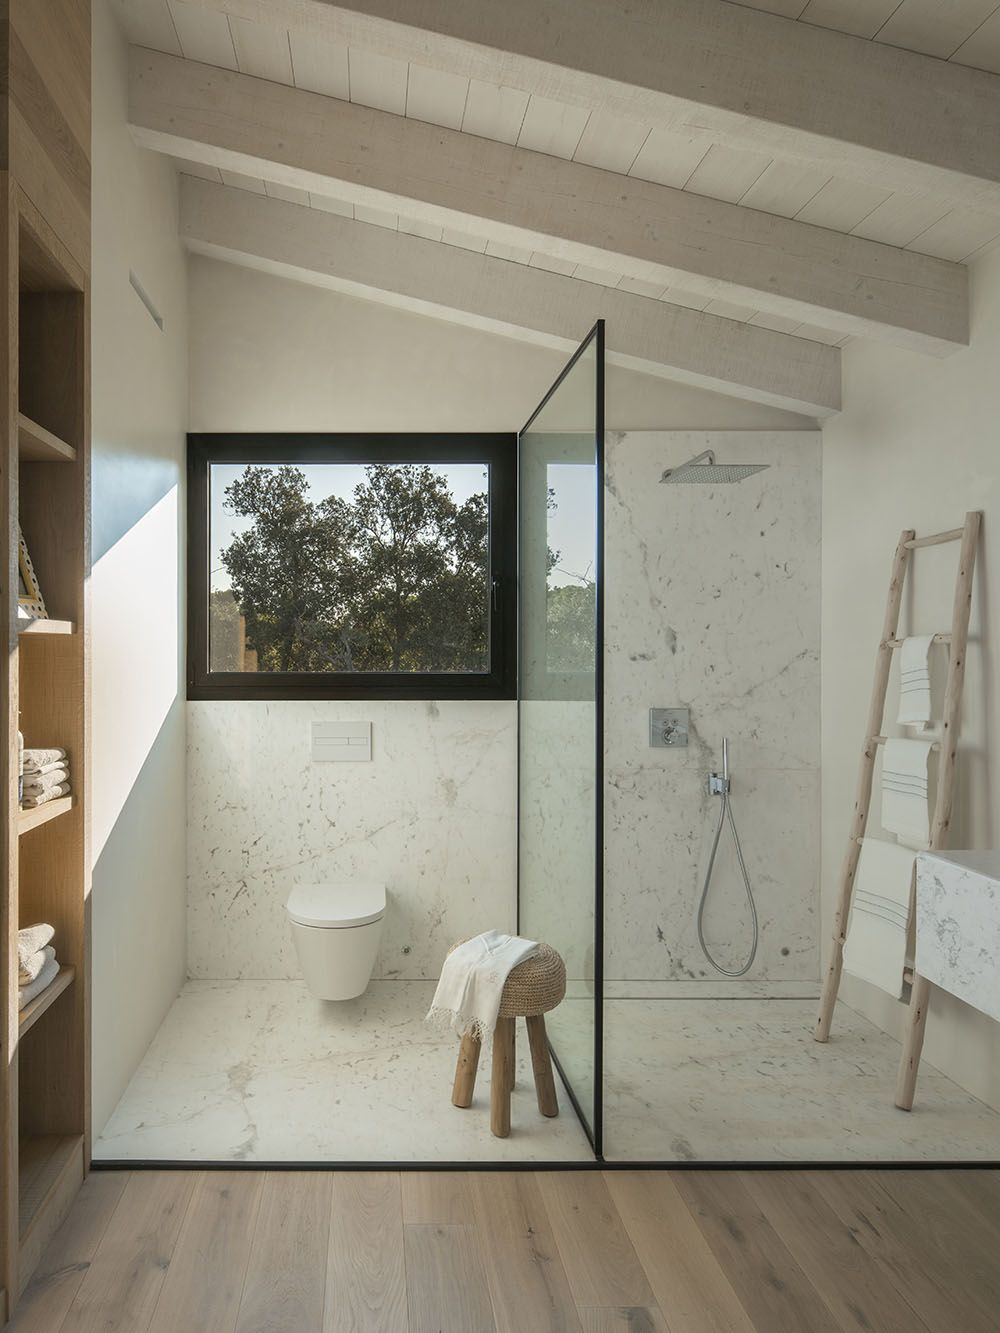 A glass wall between the shower and toilet maintains the open plan.